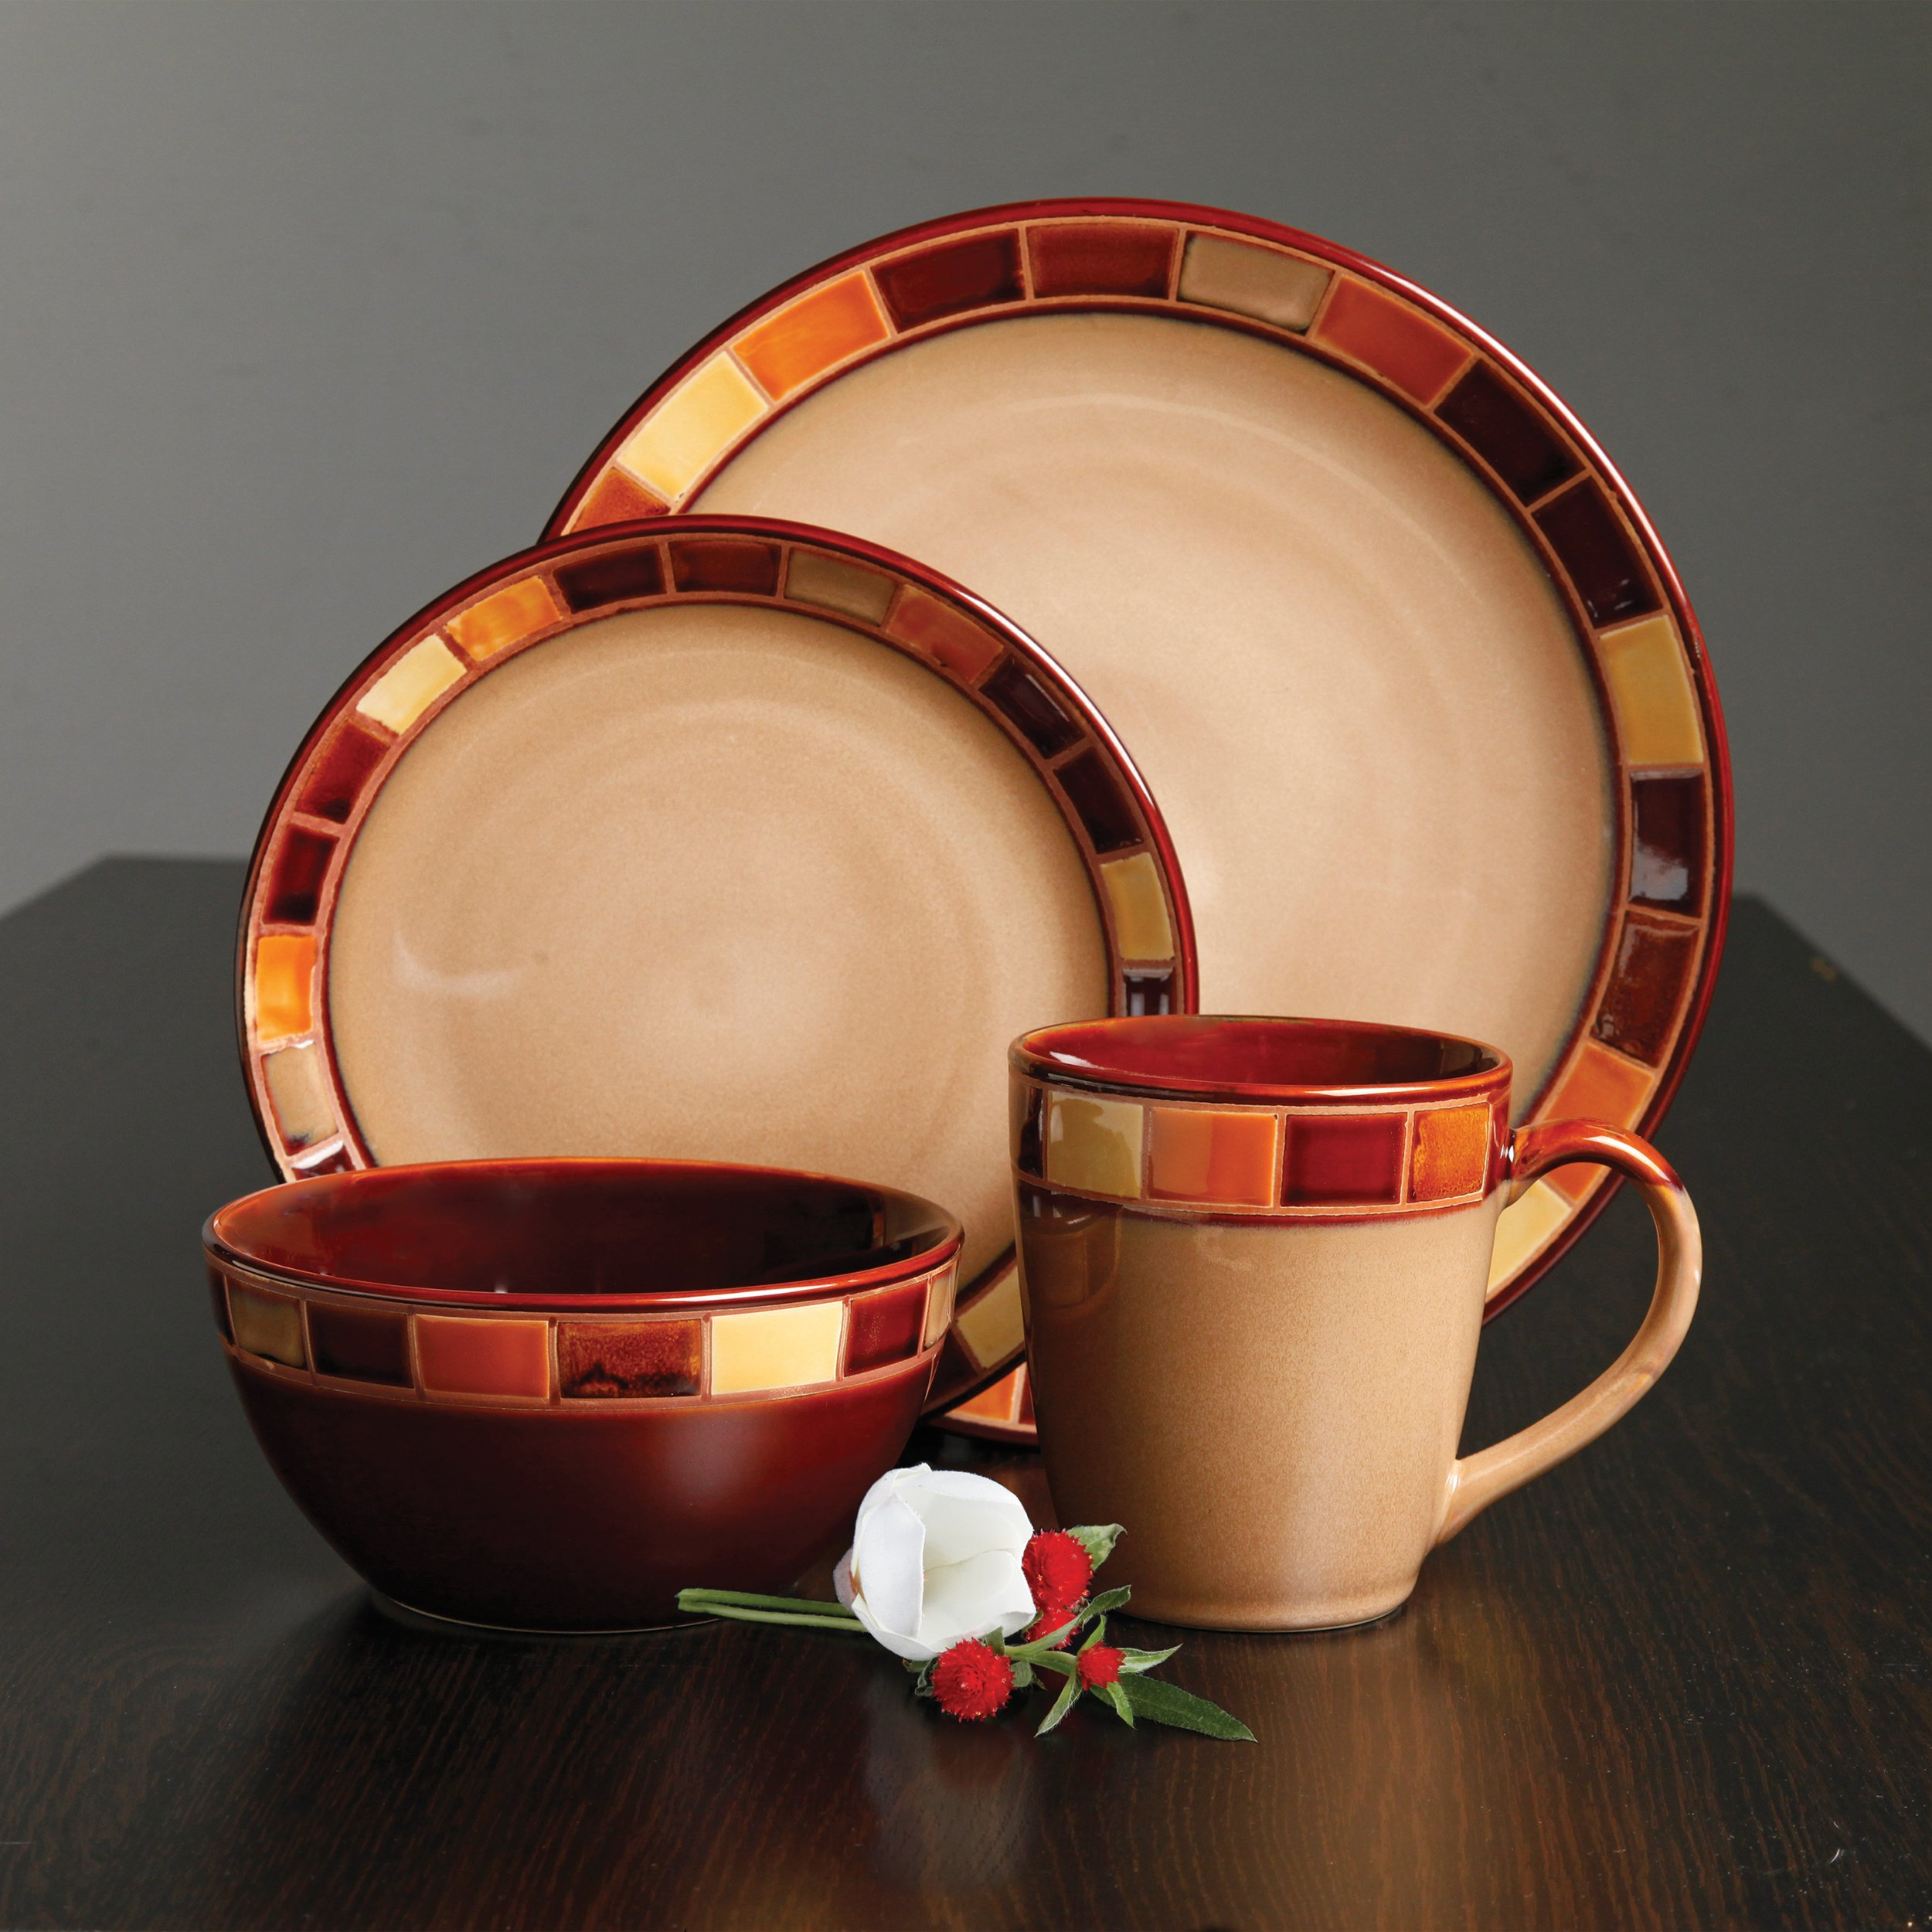 Gibson 70736.16RM Casa Estebana 16-piece Dinnerware Set Service for 4, Beige and Brown by Gibson (Image #7)